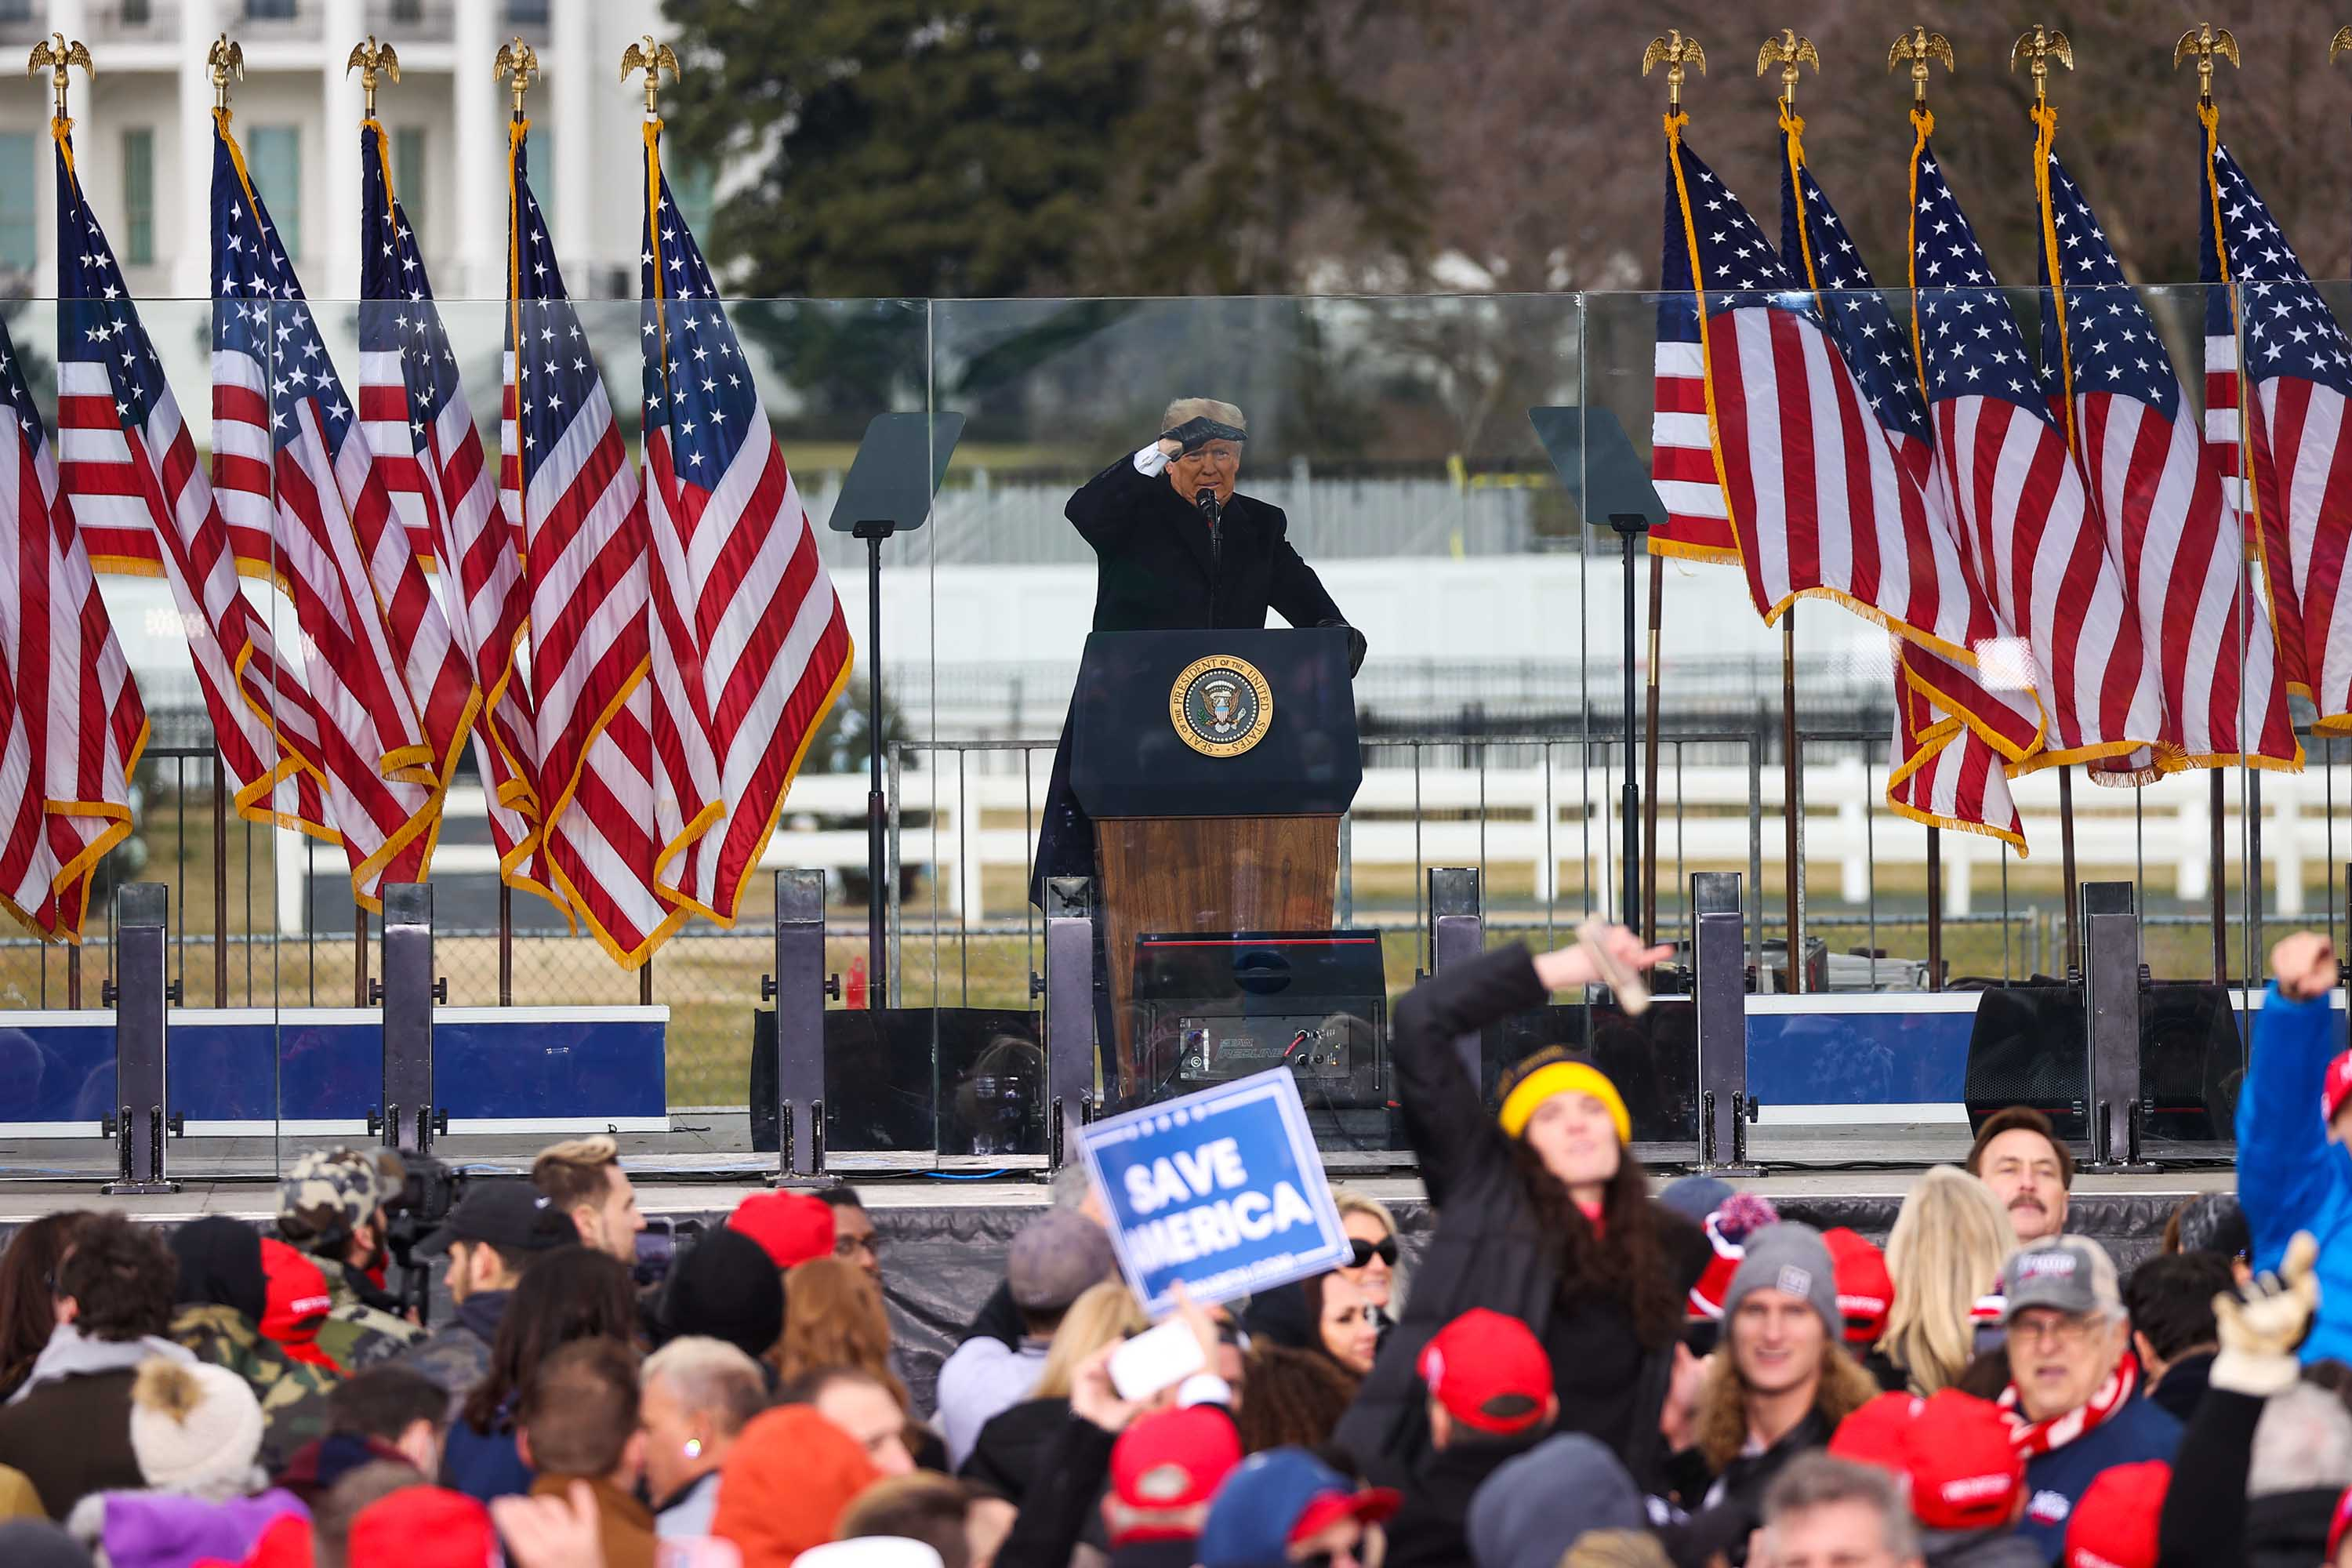 President Trump speaks to supporters at the Save America Rally in Washington D.C., on January 6.